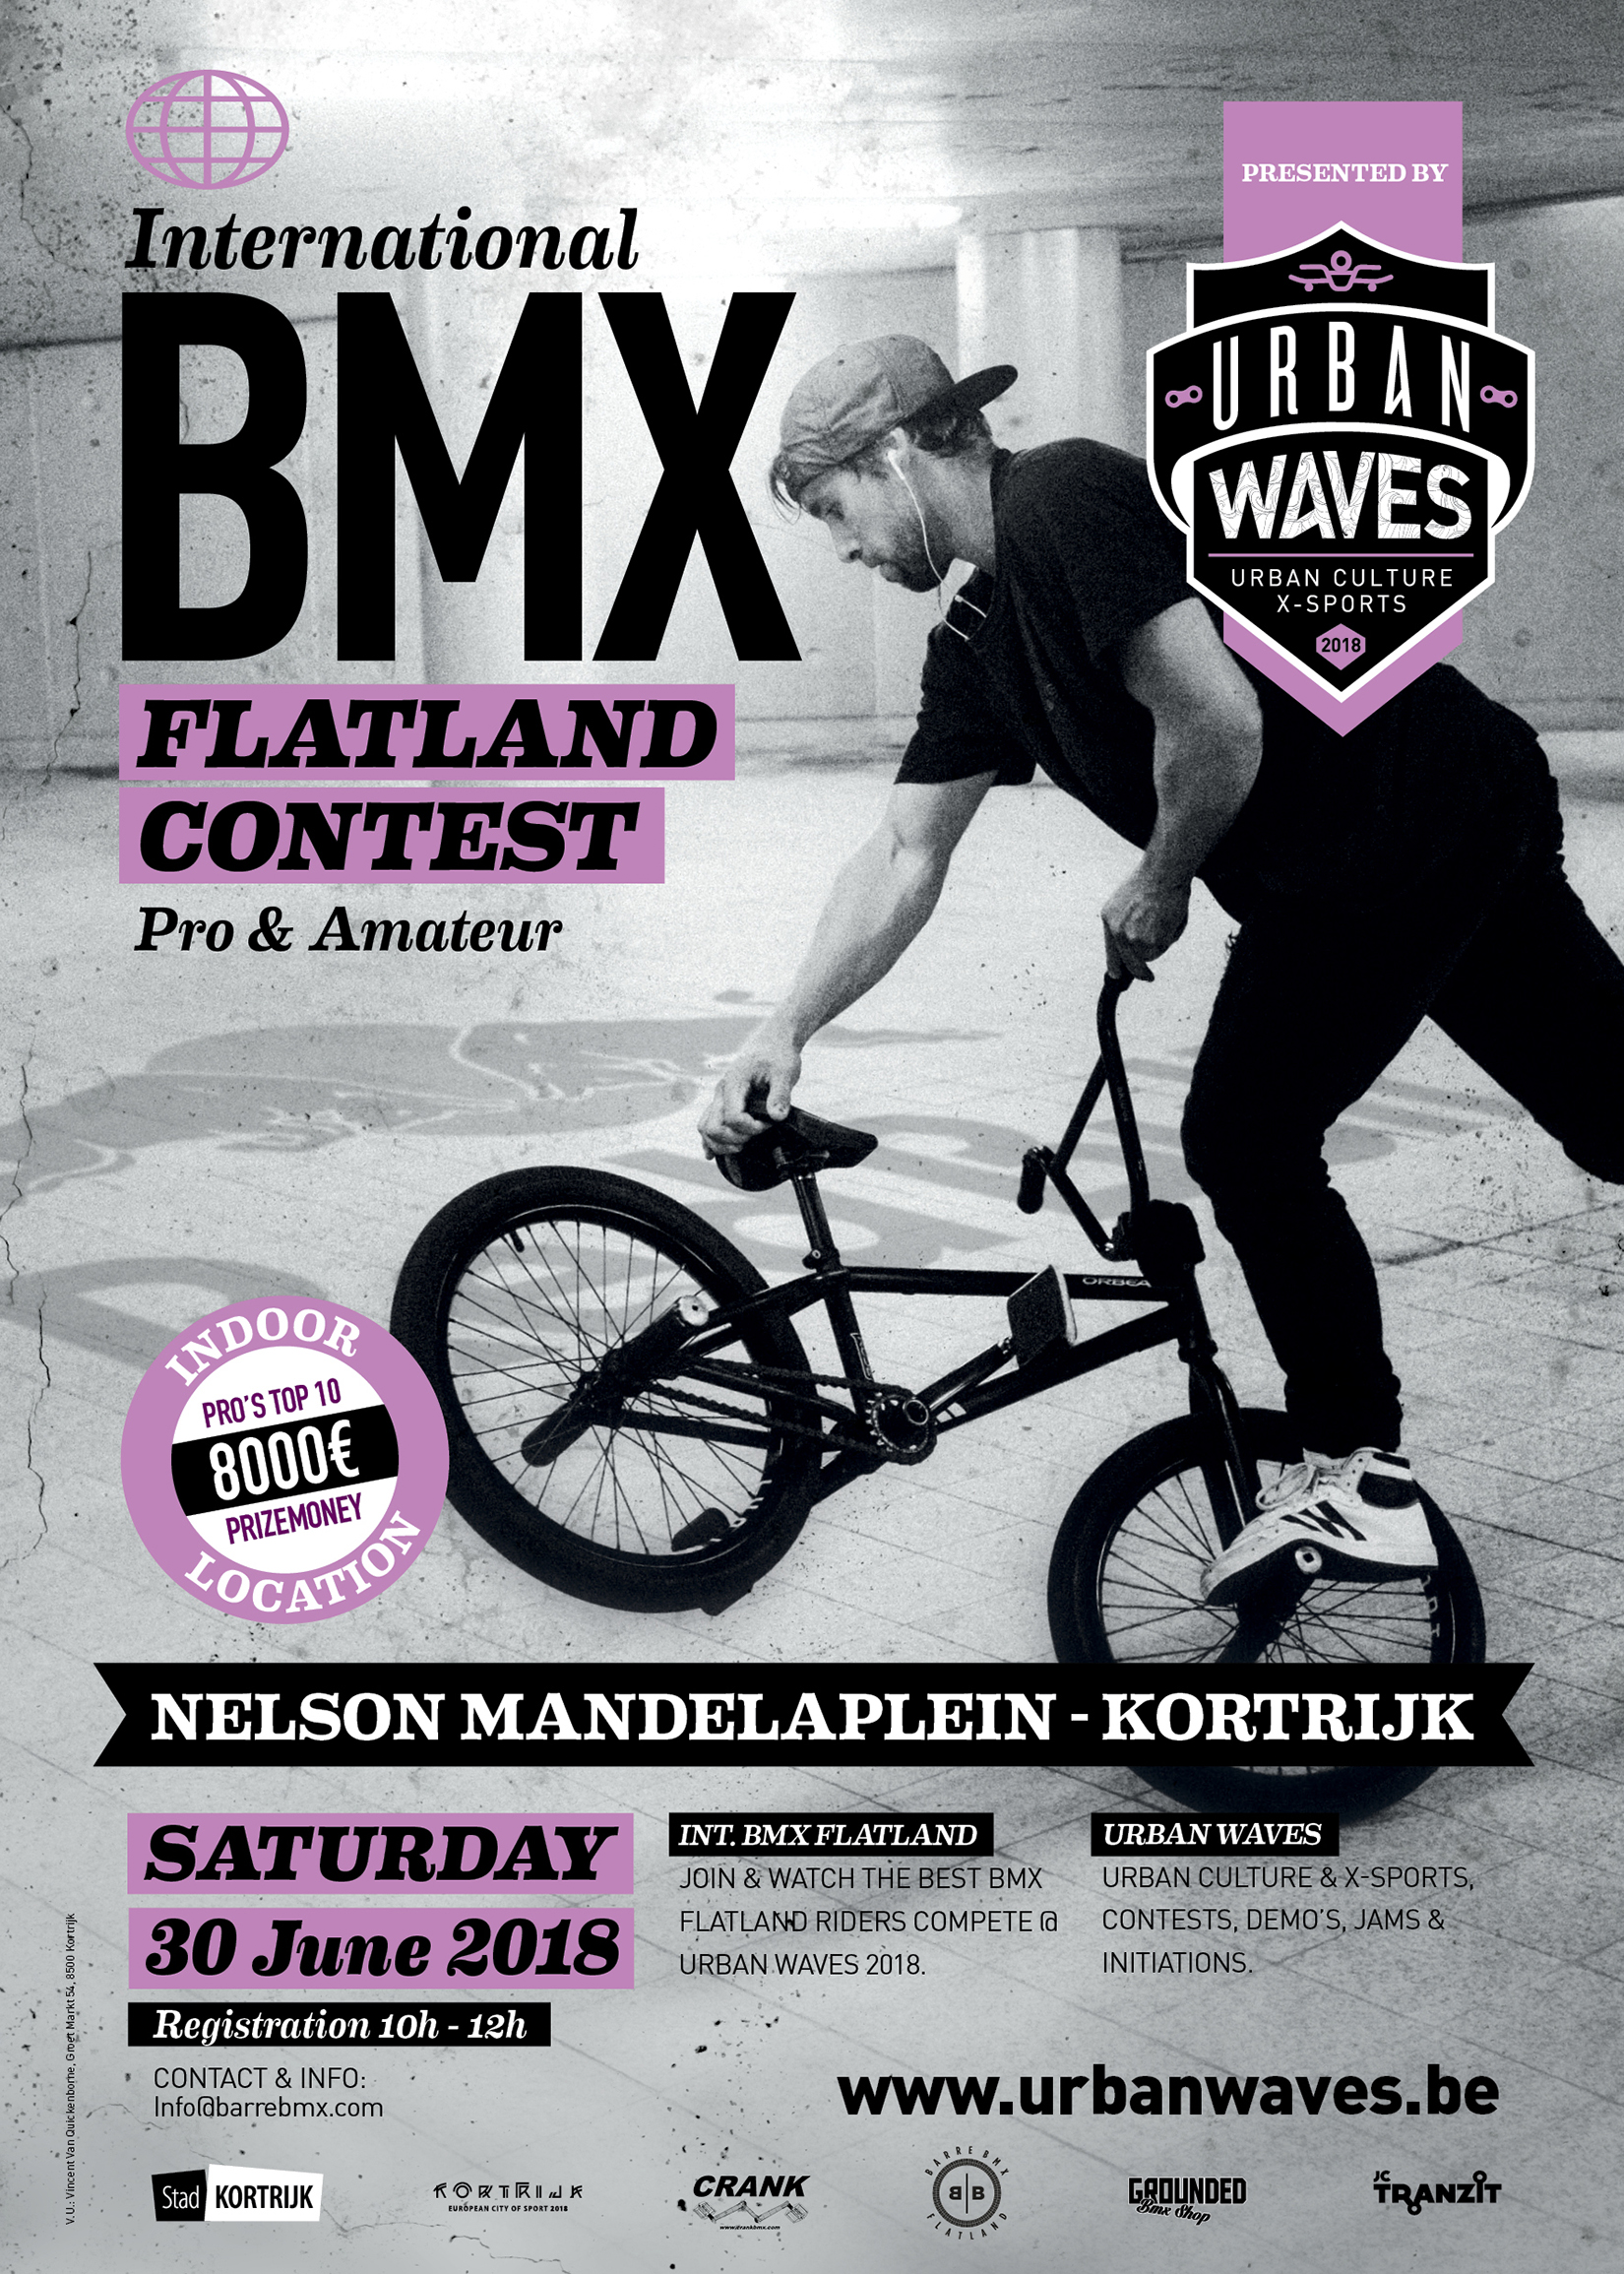 Urban Waves - BMX Flatland Contest